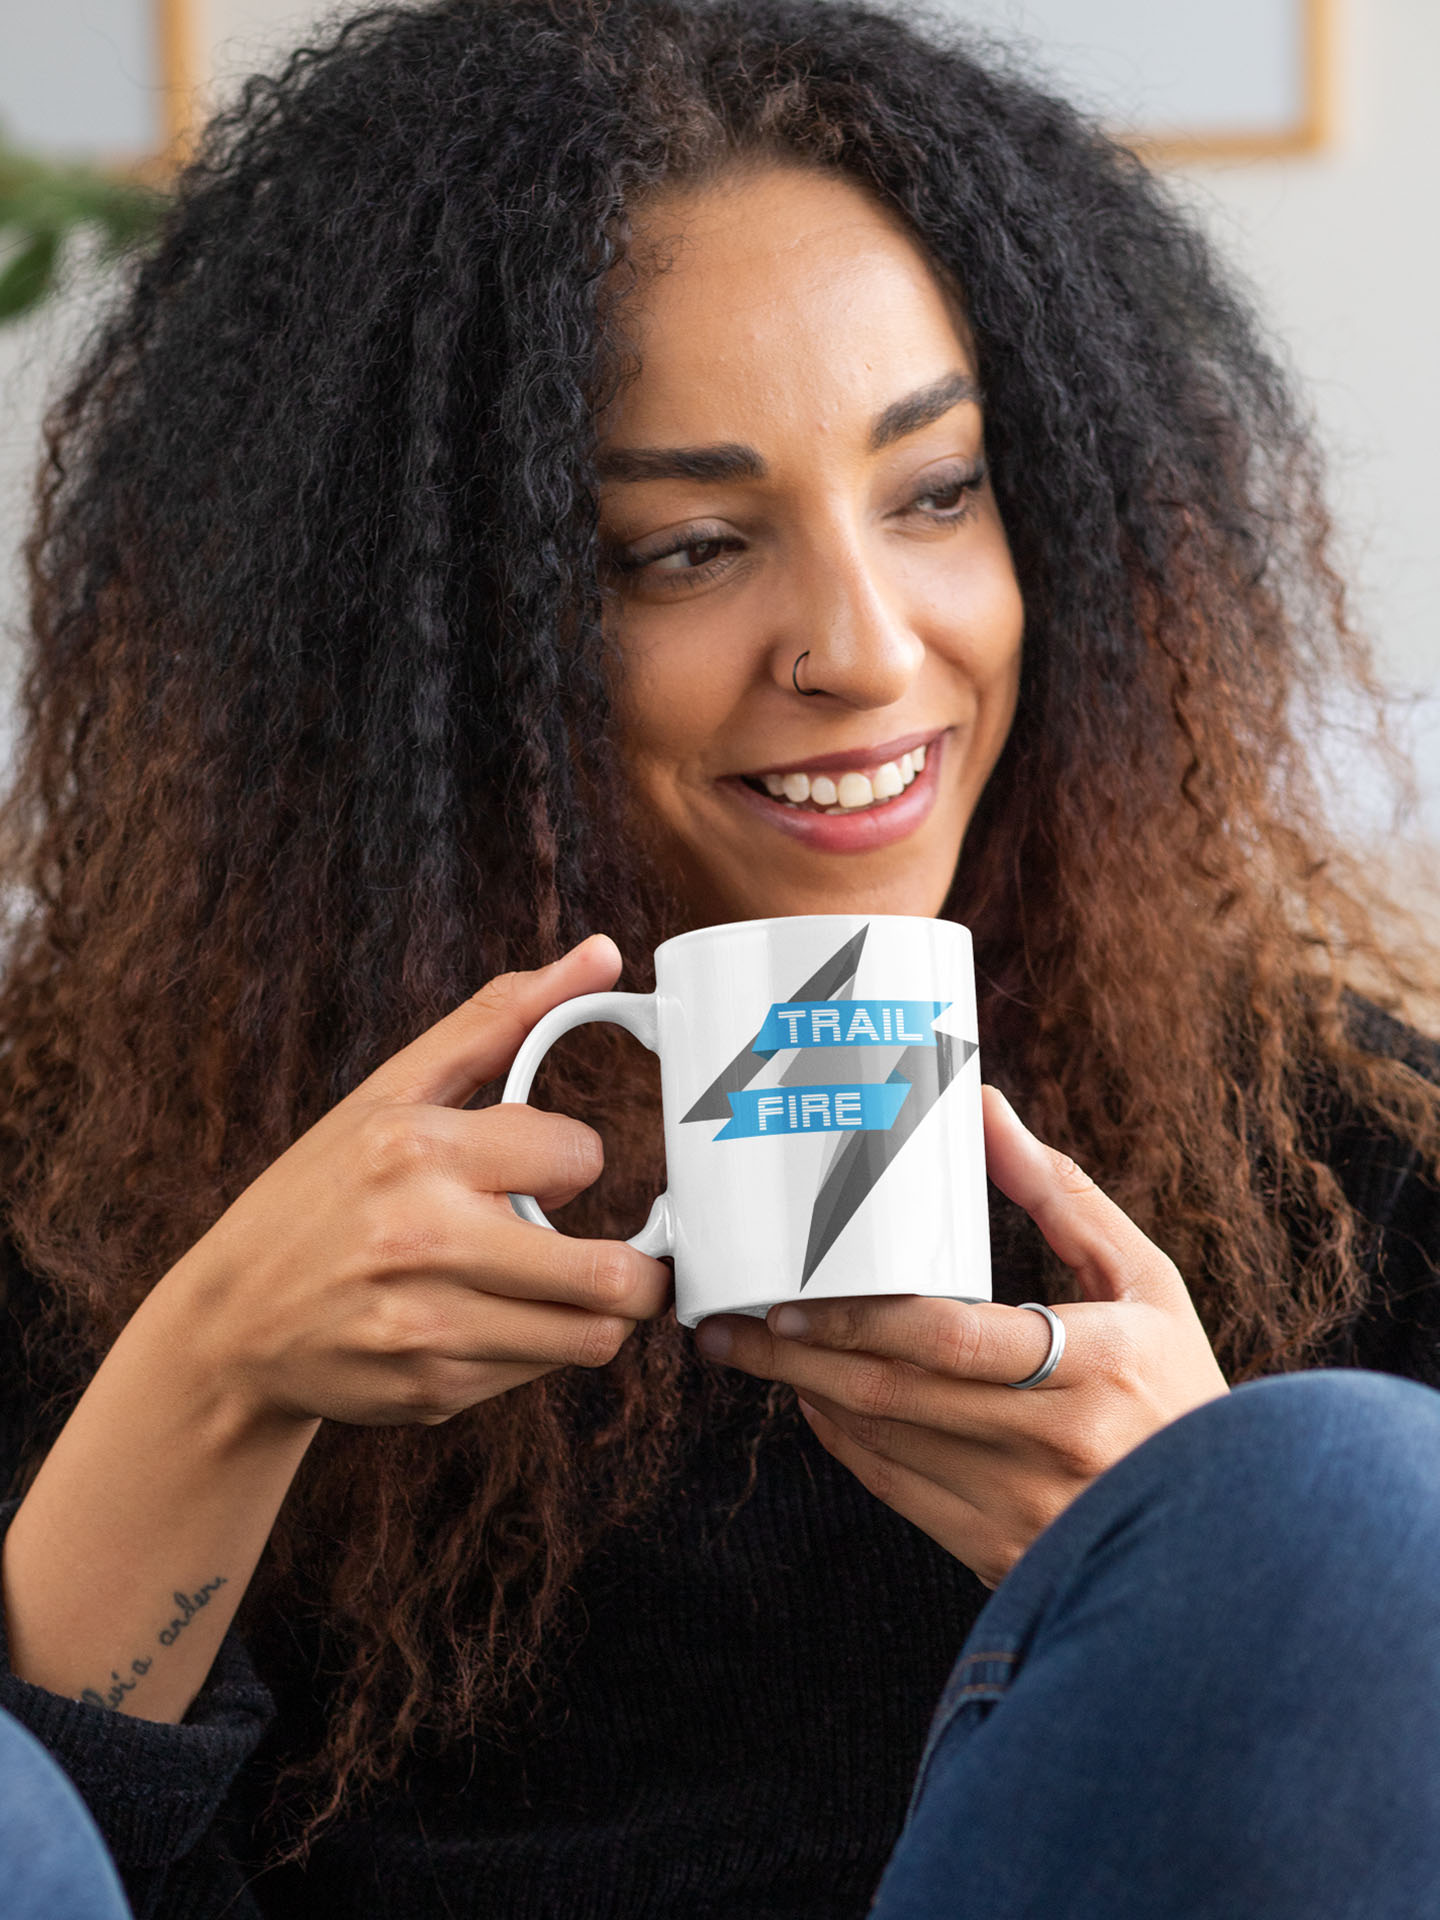 Spredshirt-Prints-Trailfire_0029_mockup-of-a-curly-haired-woman-with-an-11-oz-mug-in-her-hands-33174